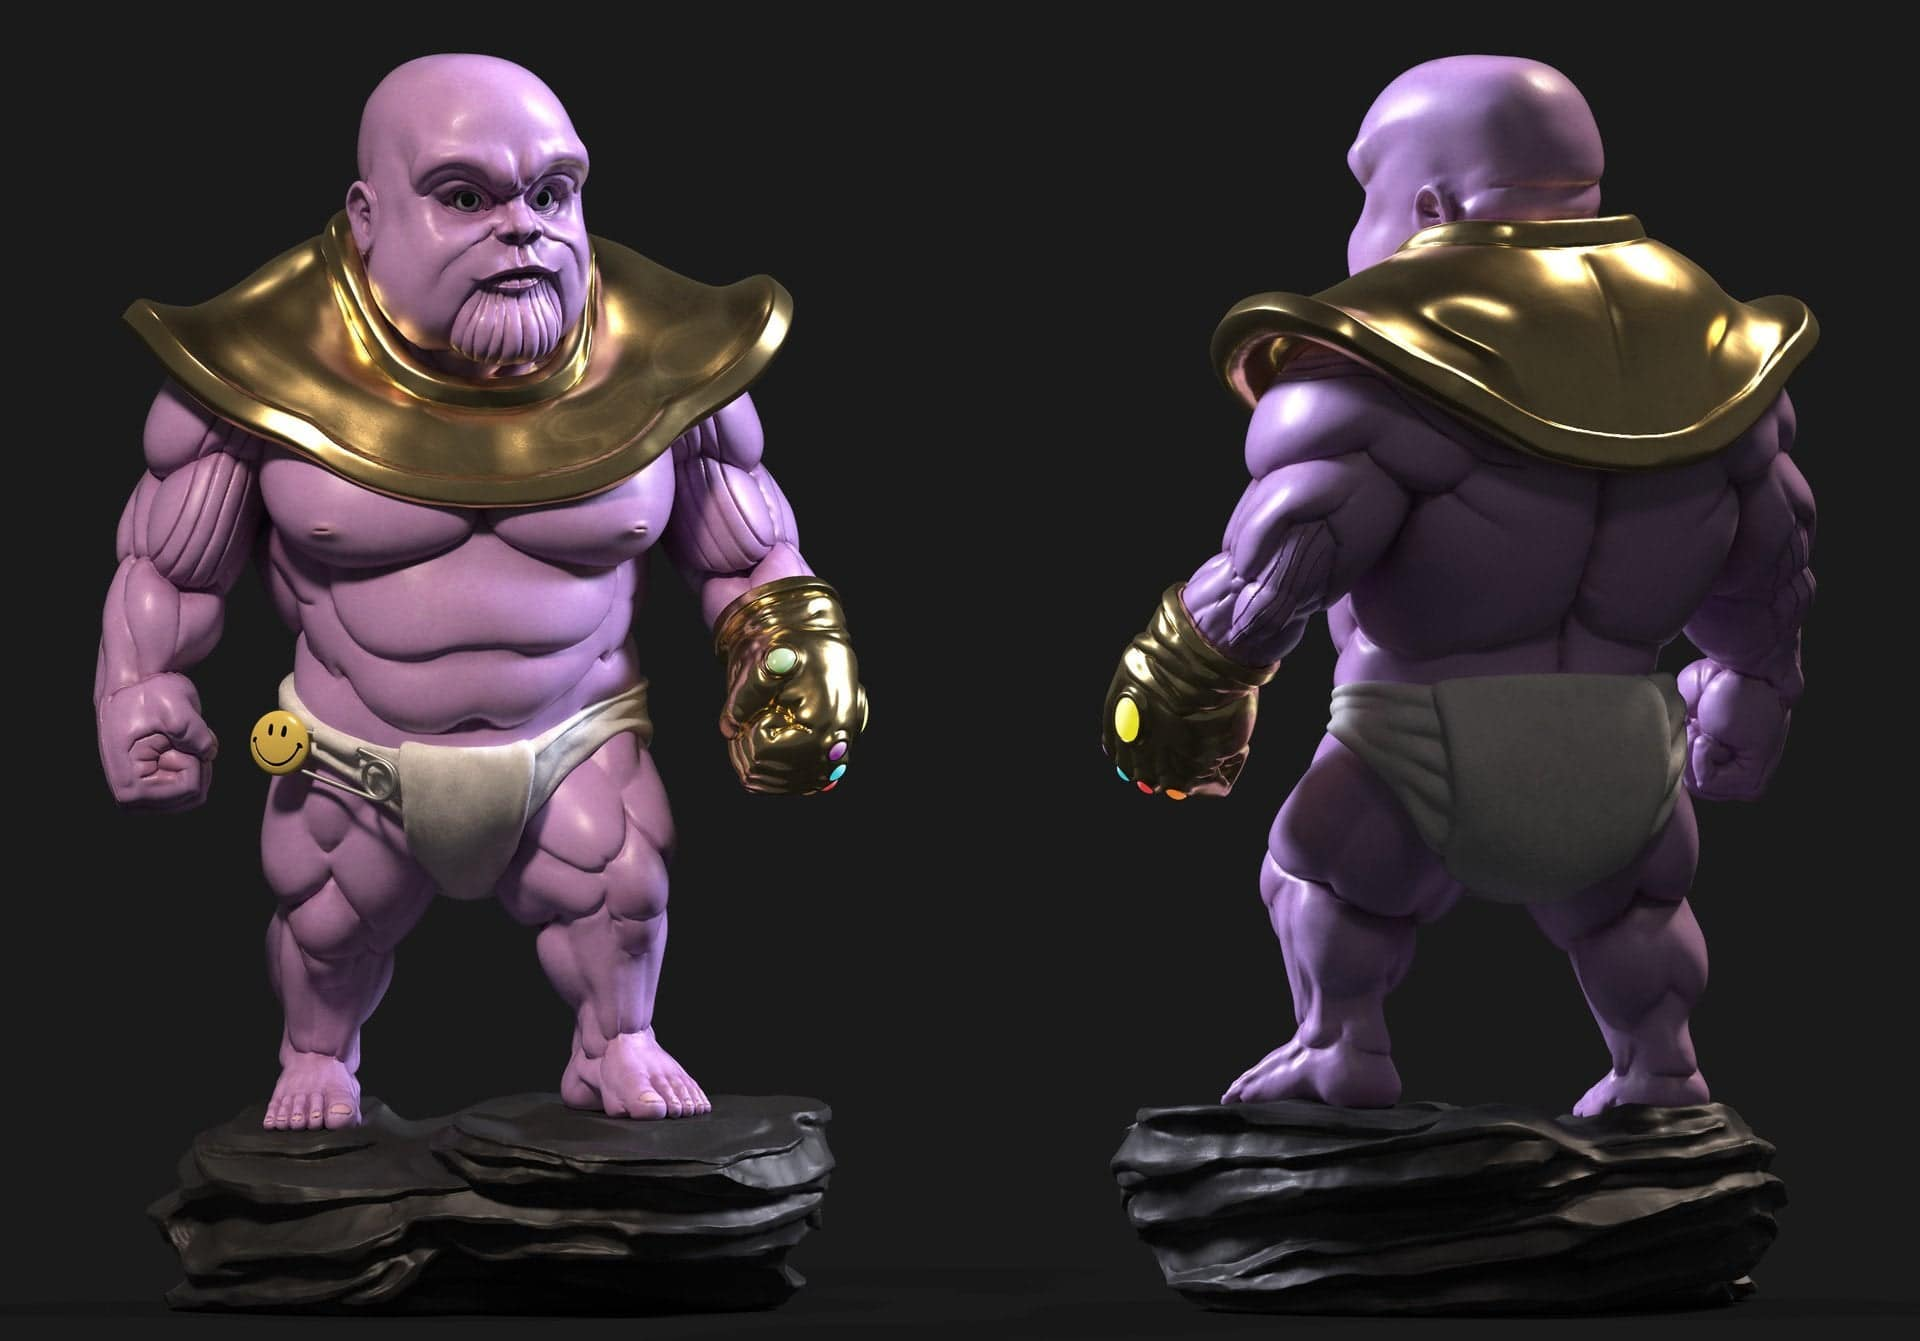 Baby Thanos is introduced in concept of the art